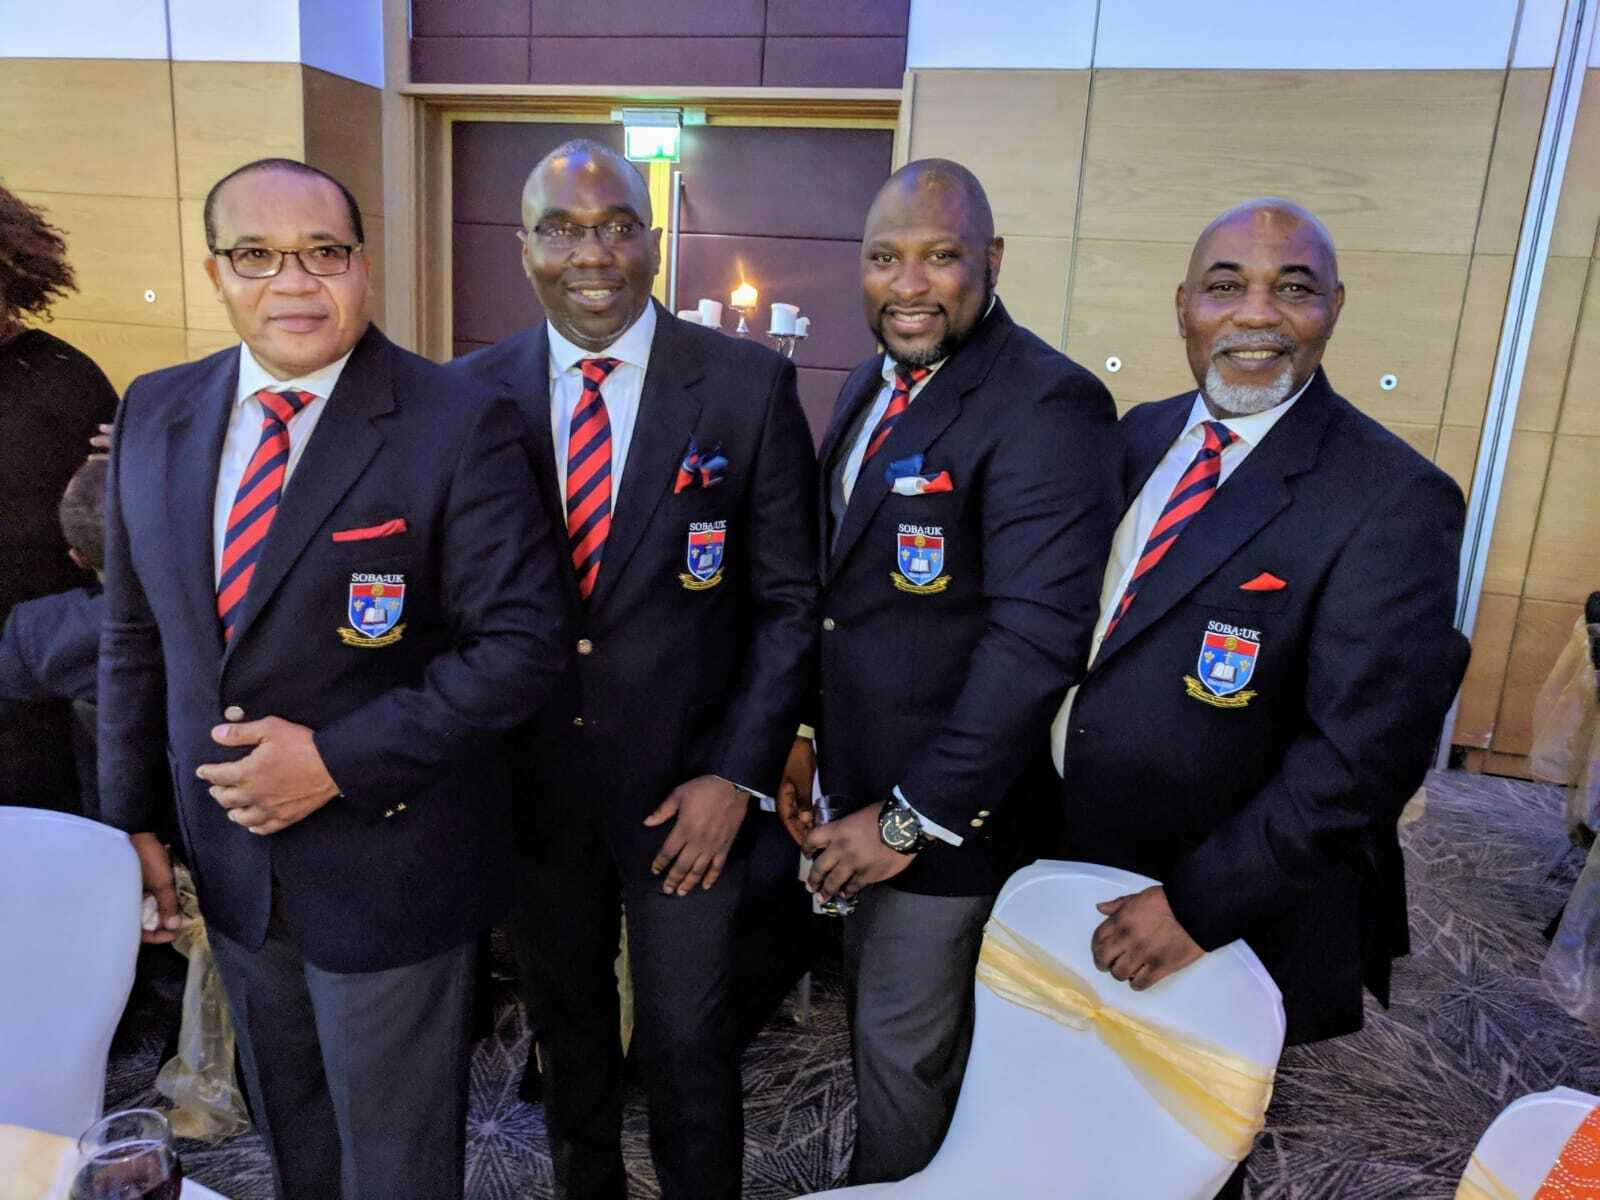 SOBA UK 2018 Annual Residential convention gala led by president Ayuk Akoh-Arrey